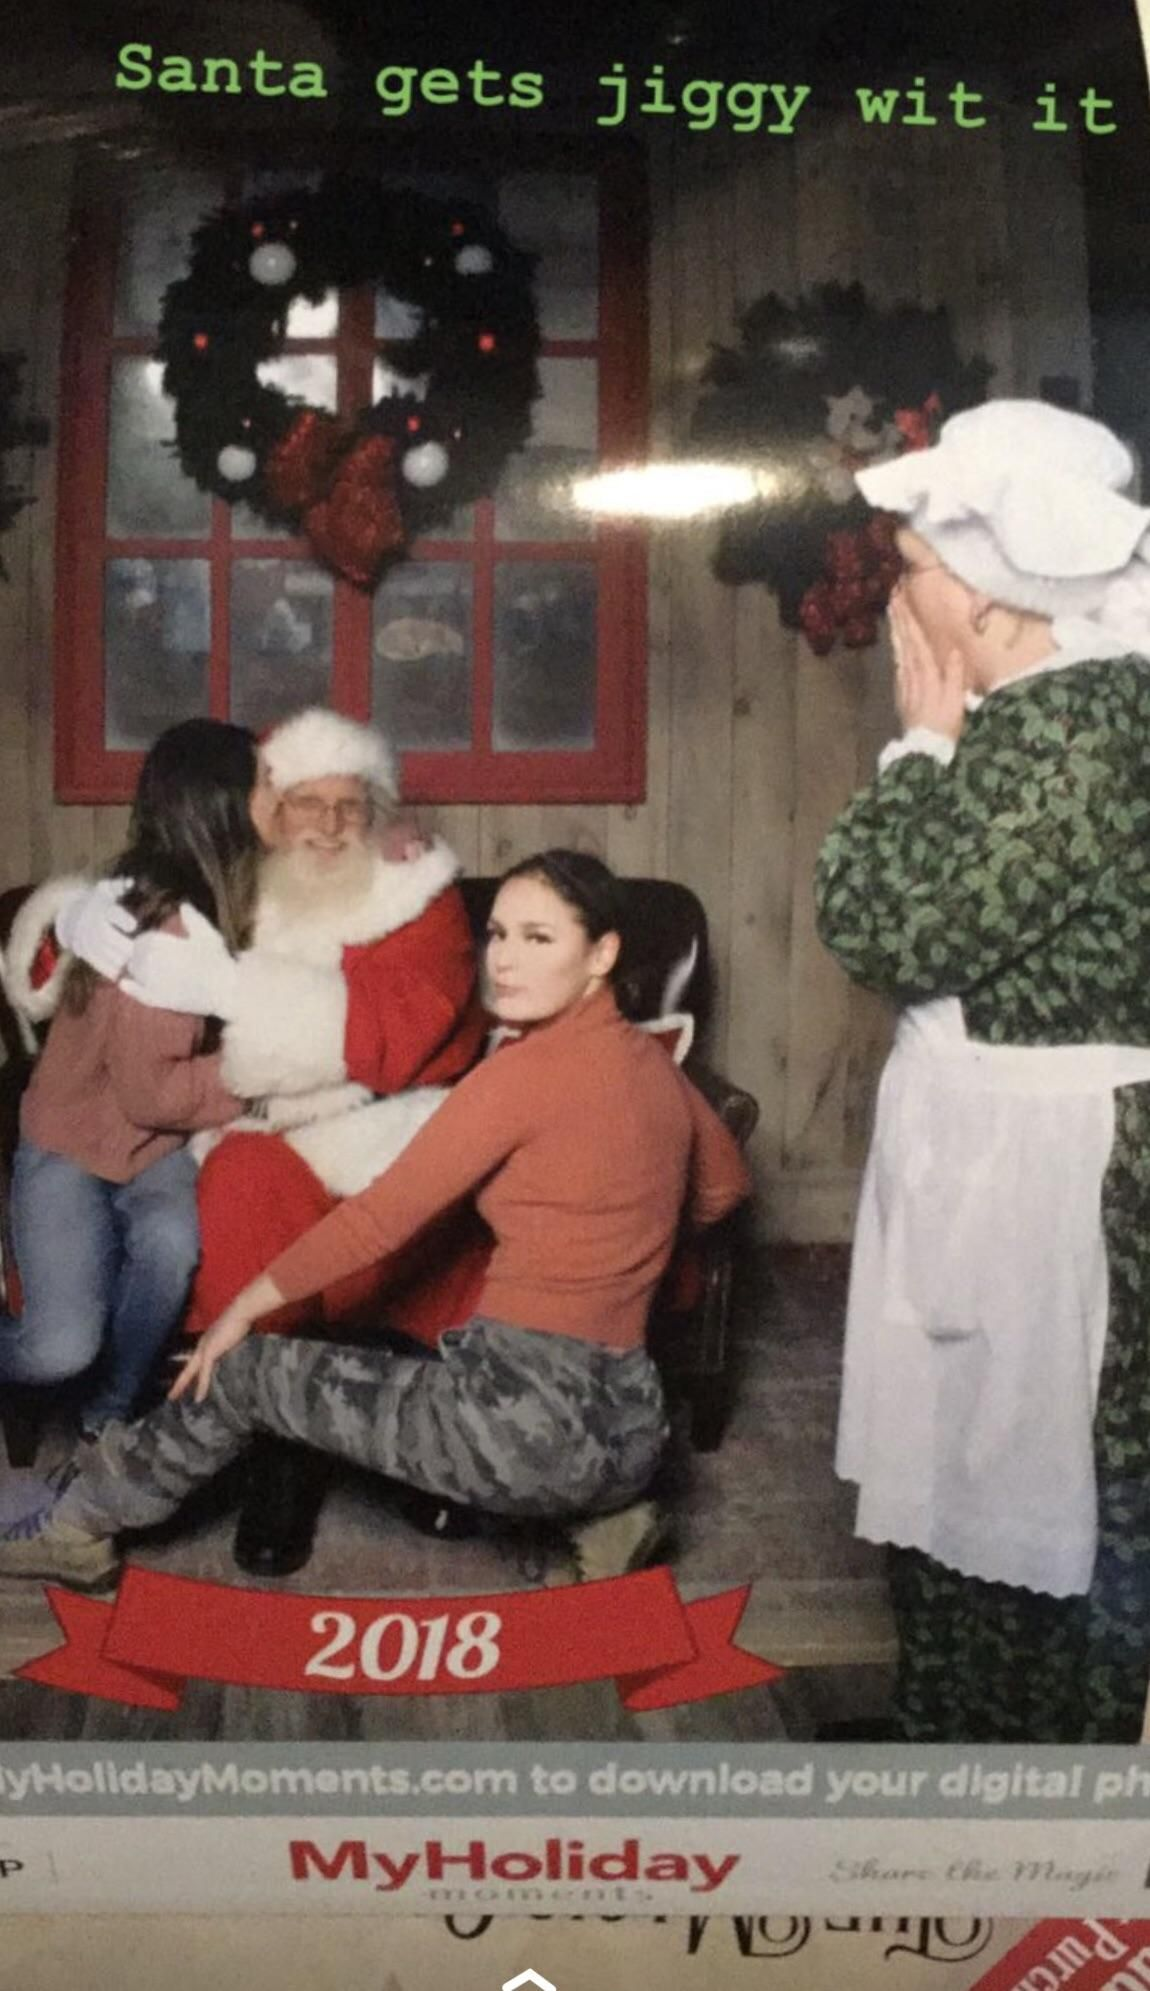 A friend and I got a picture with santa, parents in line we're not impressed